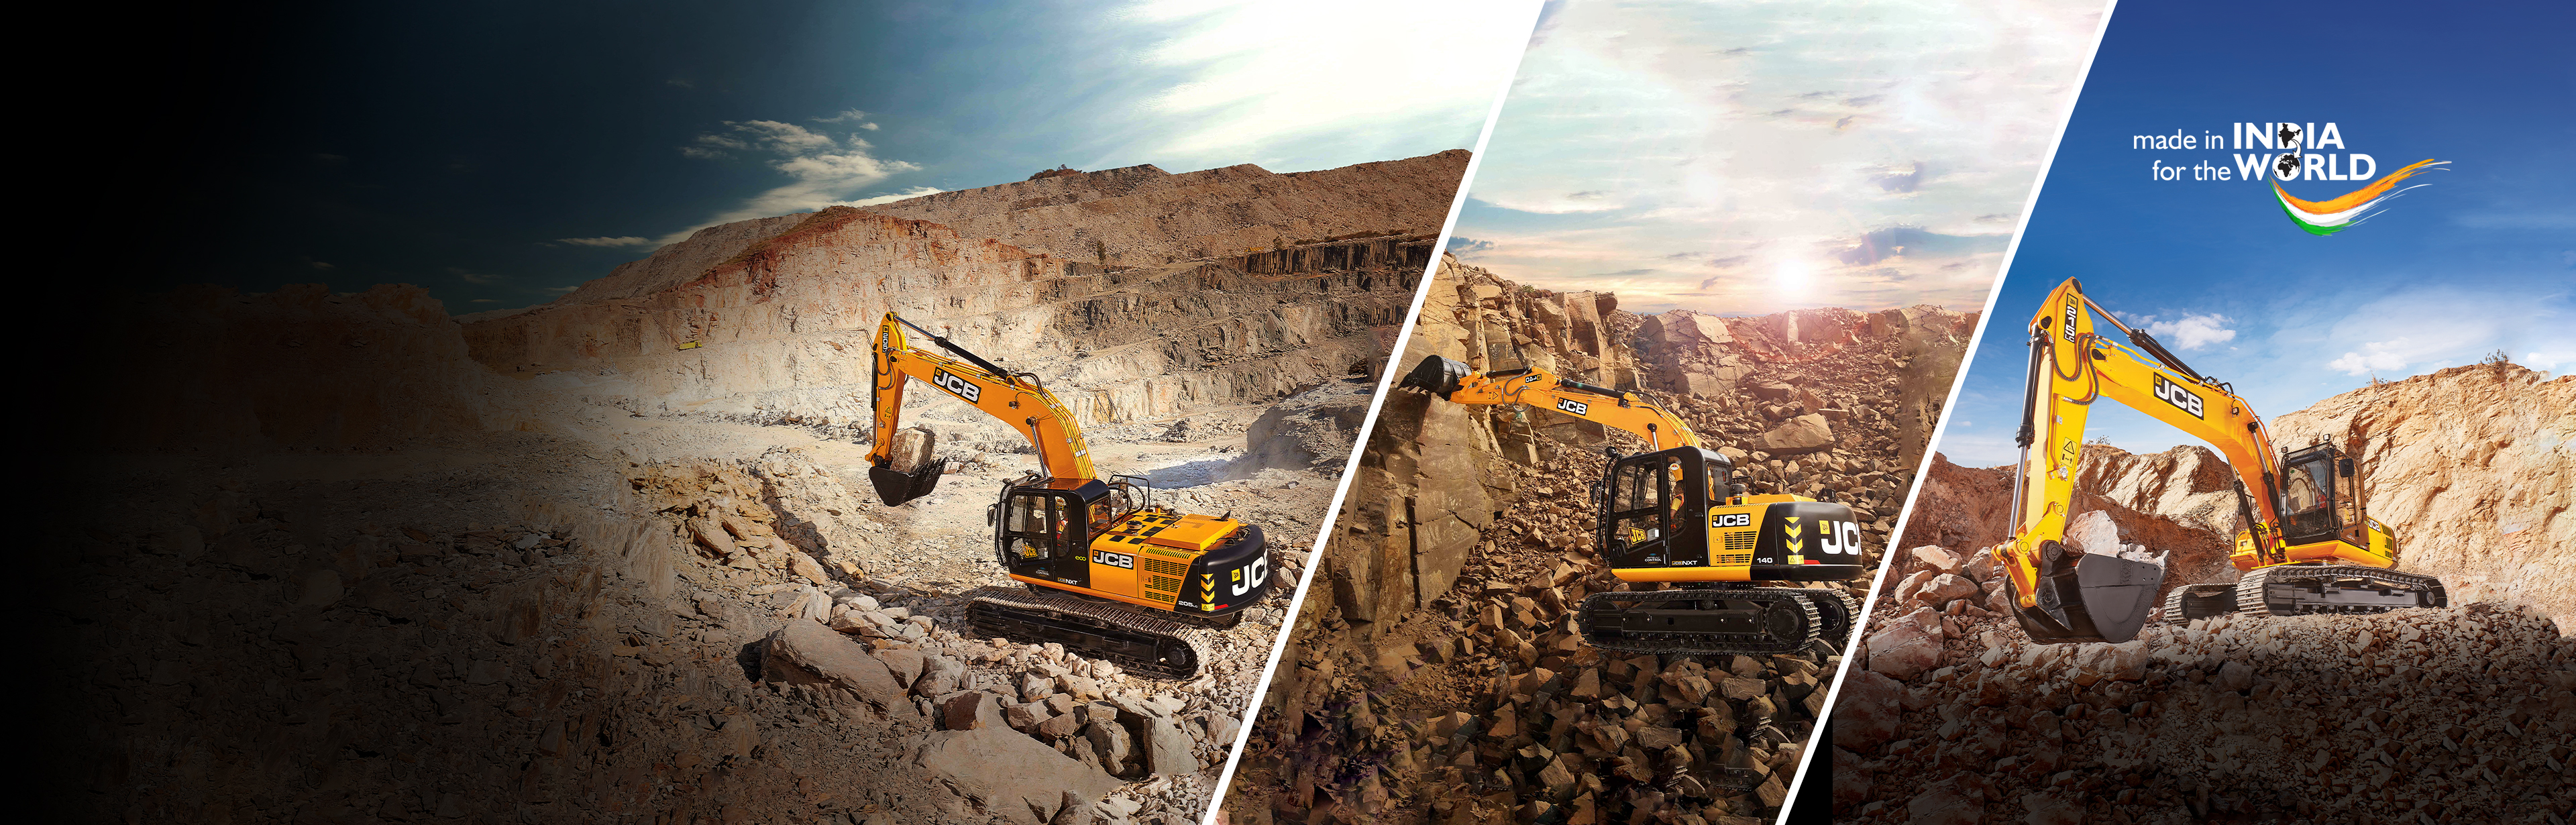 The next level excavators Durgapur